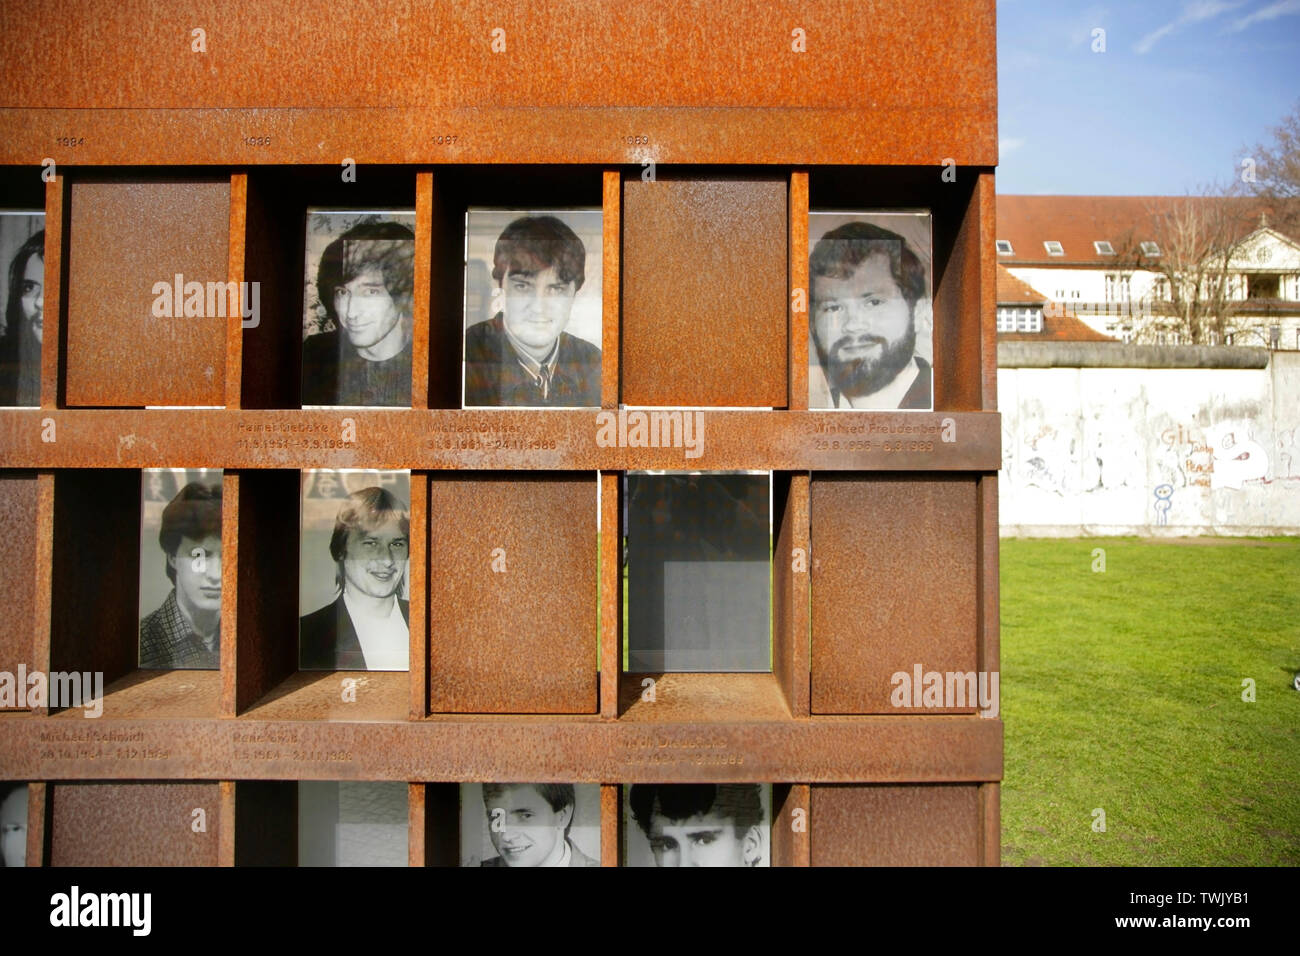 Photographs of people killed while attempting to cross the Berlin Wall, at the Berlin Wall Memorial, Bernauer Strasse, Berlin, Germany. Stock Photo